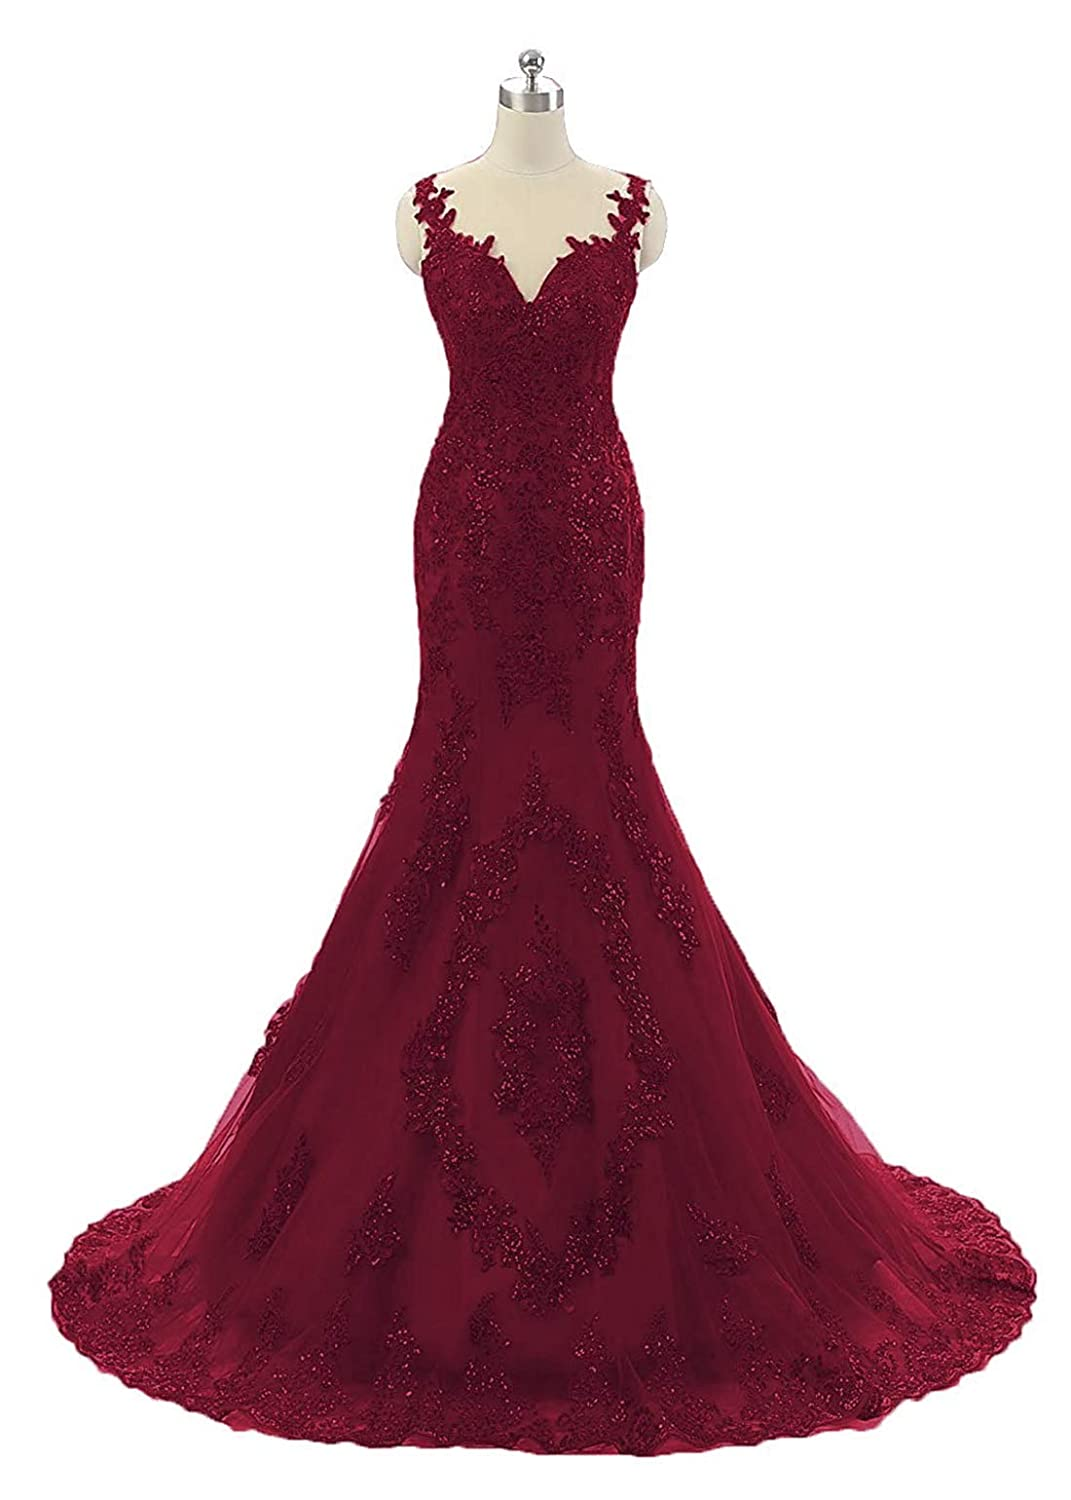 Burgundy Sexy Sequin Mermaid Prom Dresses Long Lace Backless Spaghetti Strap Womens Pageant Evening Party Gown